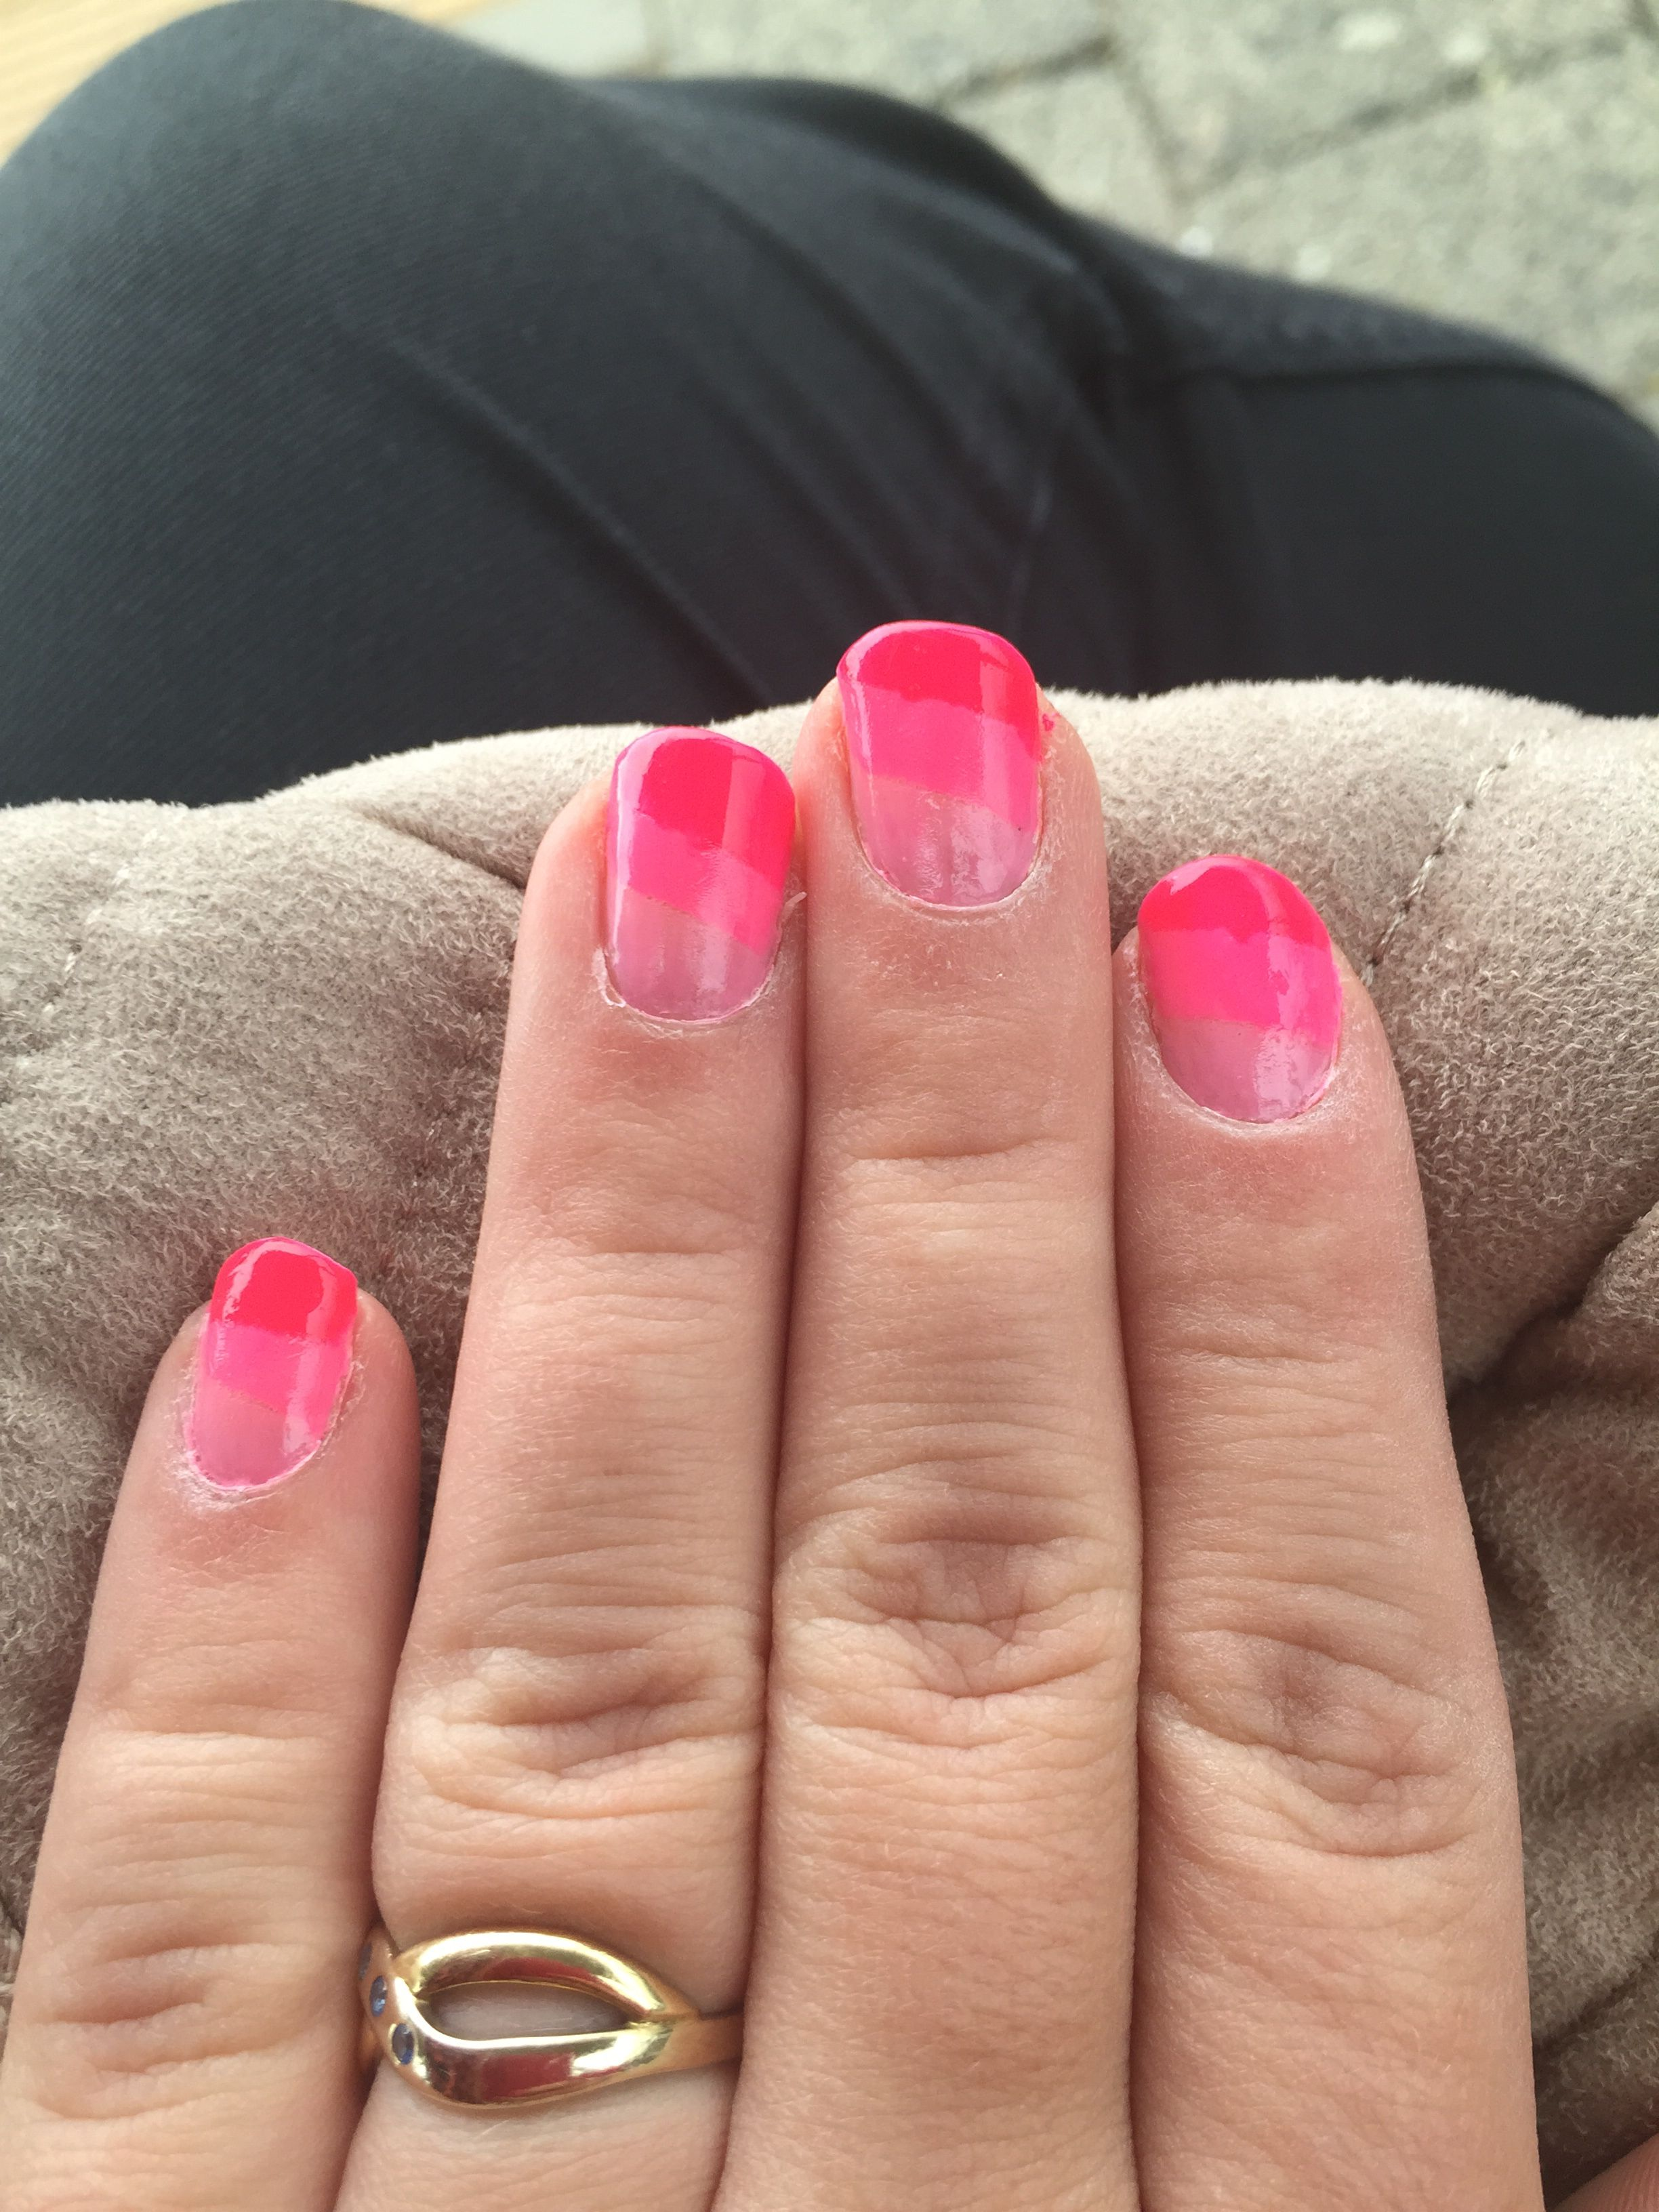 Three colors of pink so easy to make ☺️ happy with it